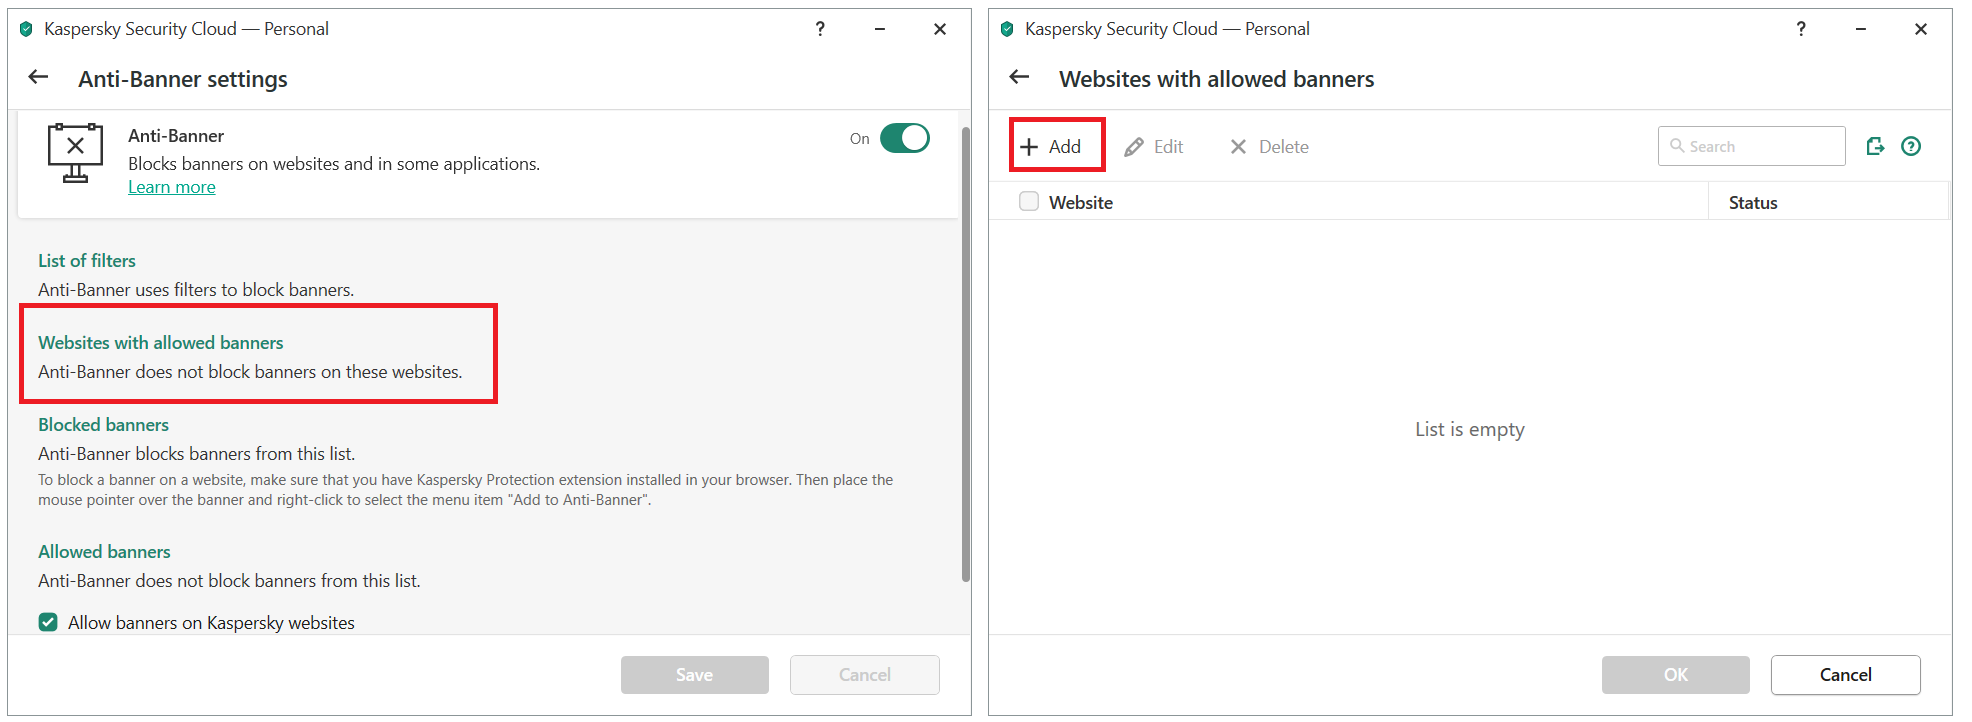 Adding a banner to the allowlist in Kaspersky Security Cloud